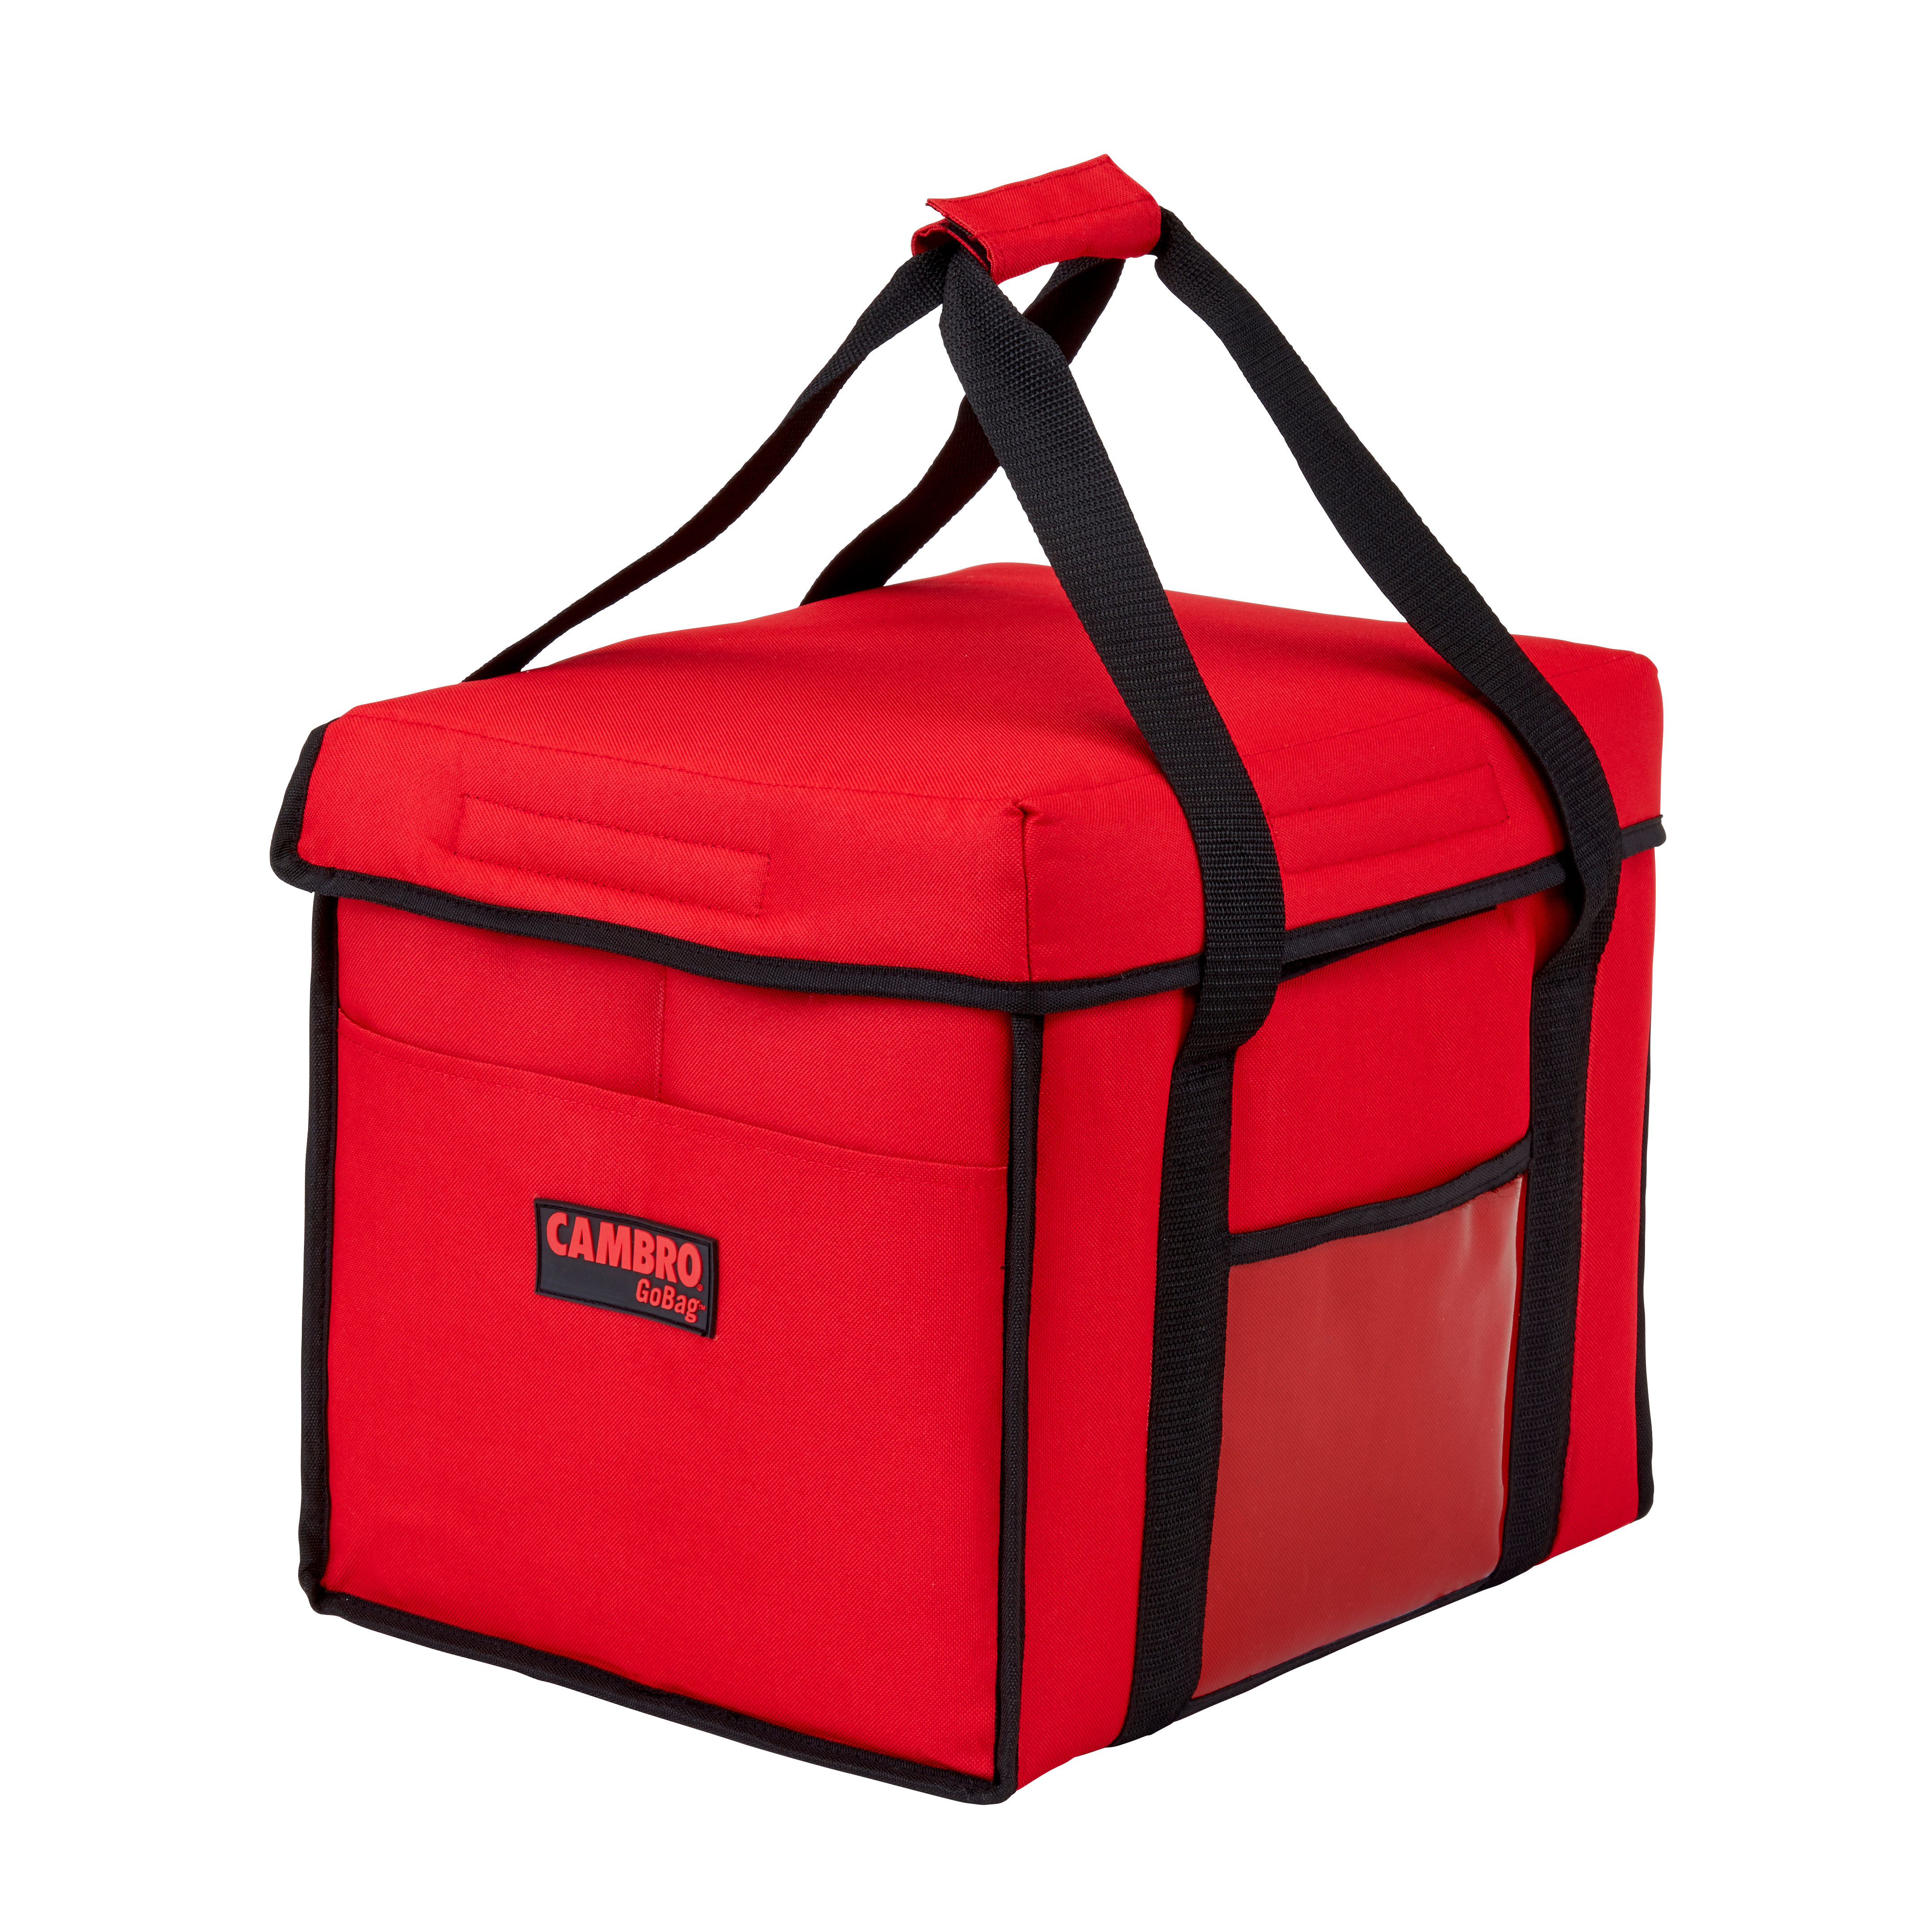 Cambro GBD151212521 delivery bag